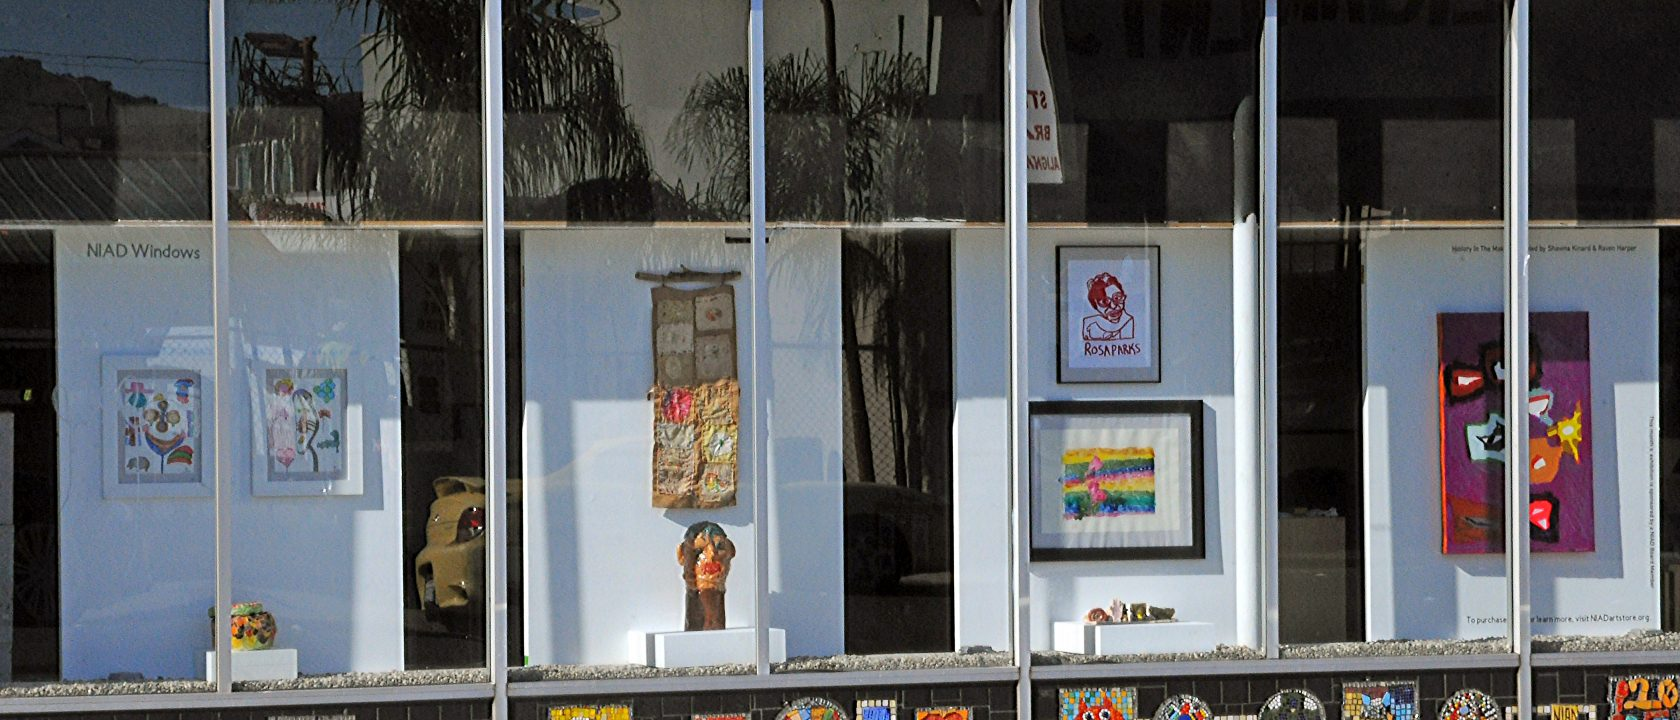 NIAD Art Centers front windows display a series of artworks by African American artists including ceramics, prints, and drawings.